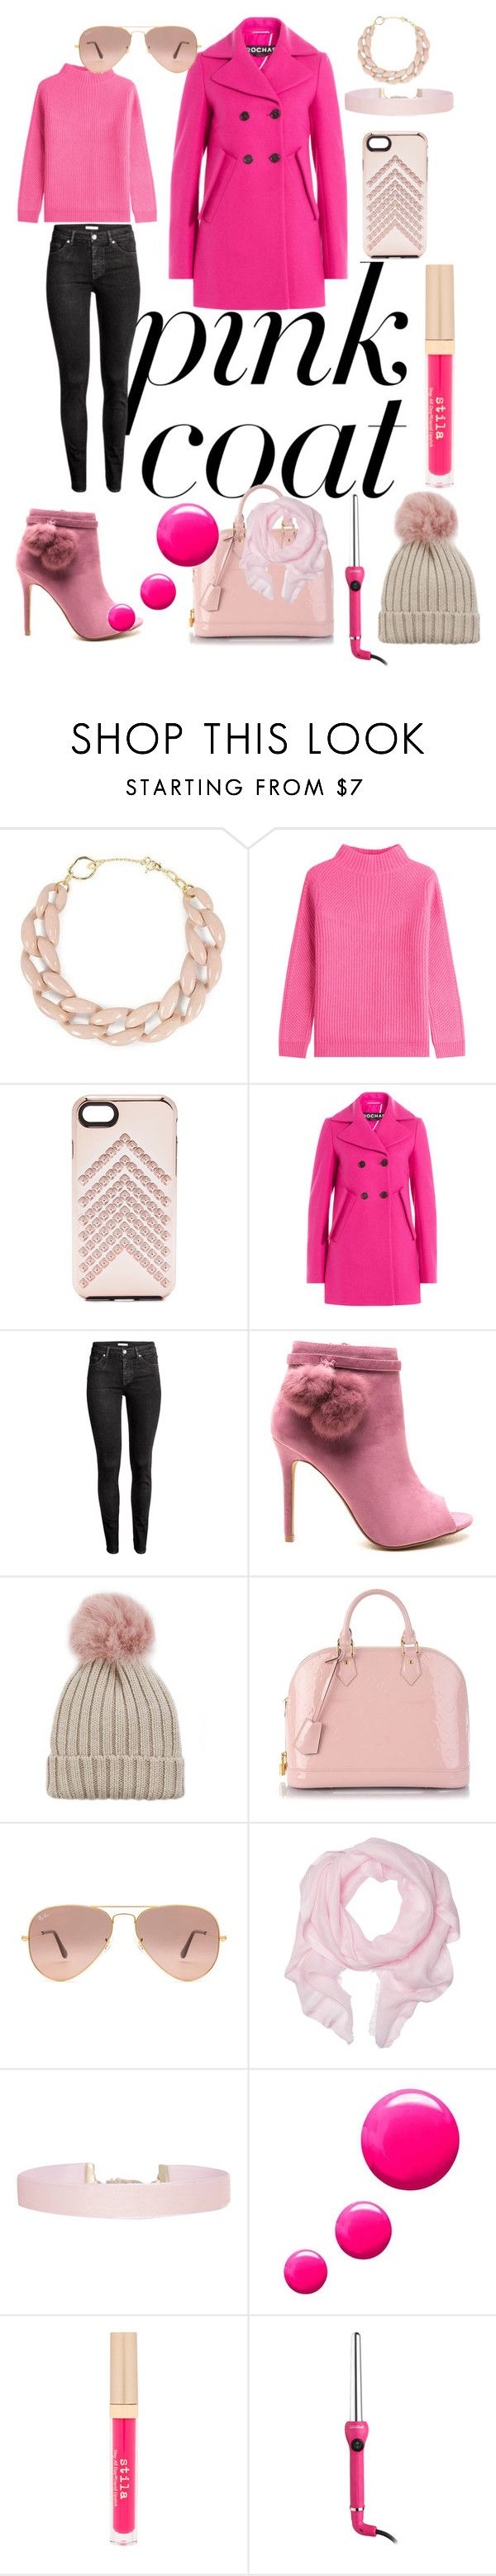 """Untitled #380"" by jennvsjewels ❤ liked on Polyvore featuring DIANA BROUSSARD, Diane Von Furstenberg, Rebecca Minkoff, Rochas, H&M, Jocelyn, Louis Vuitton, Ray-Ban, Love Quotes Scarves and Humble Chic"